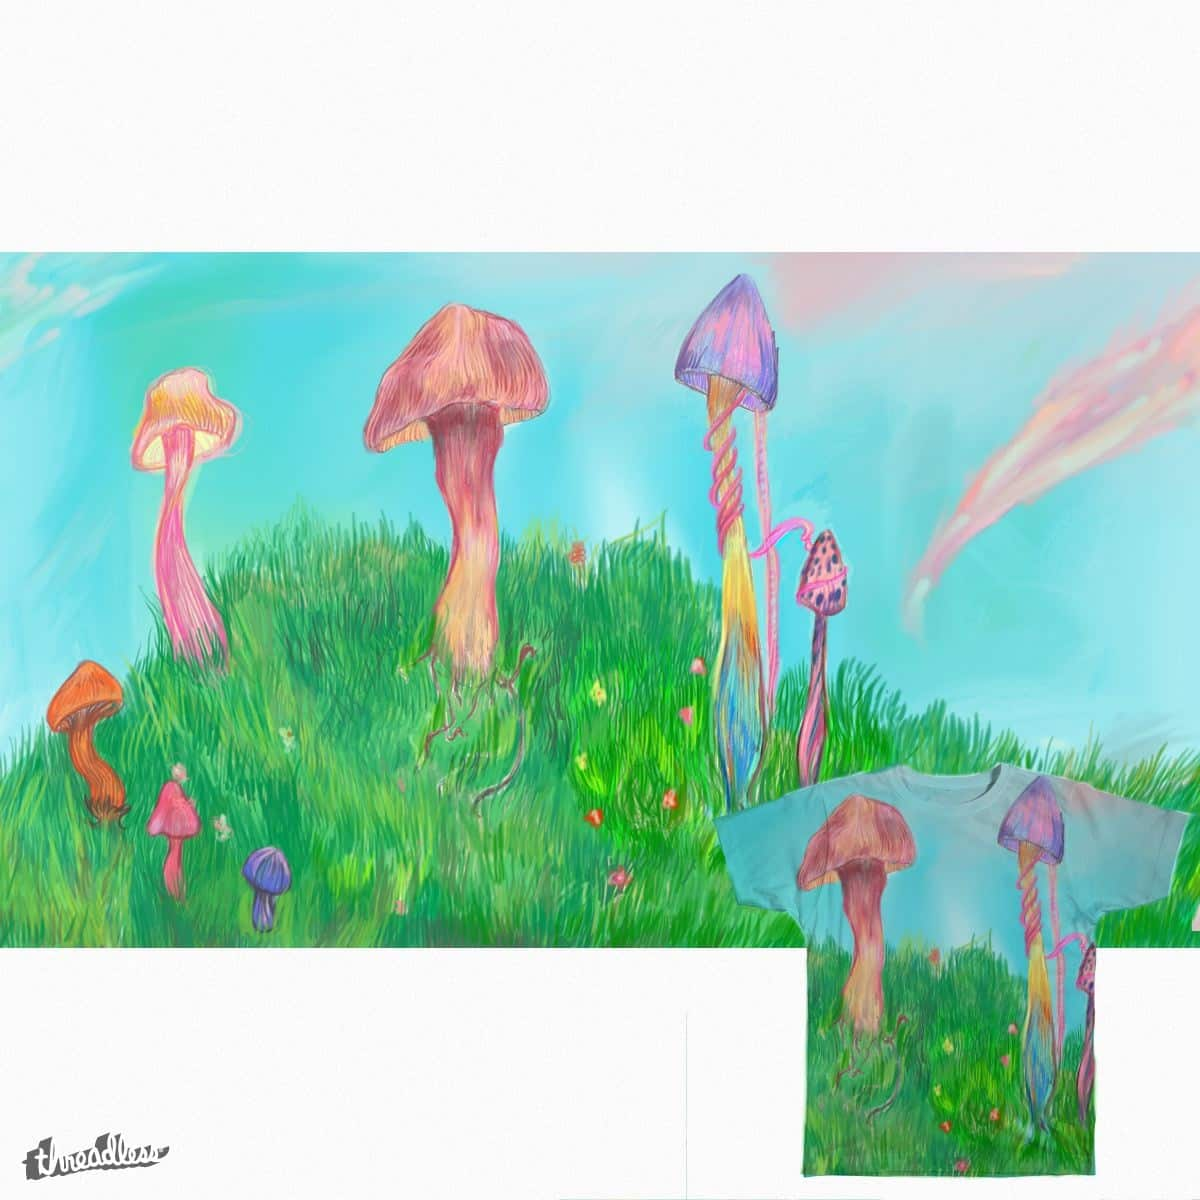 Psychedelic Fungi by teaheart on Threadless